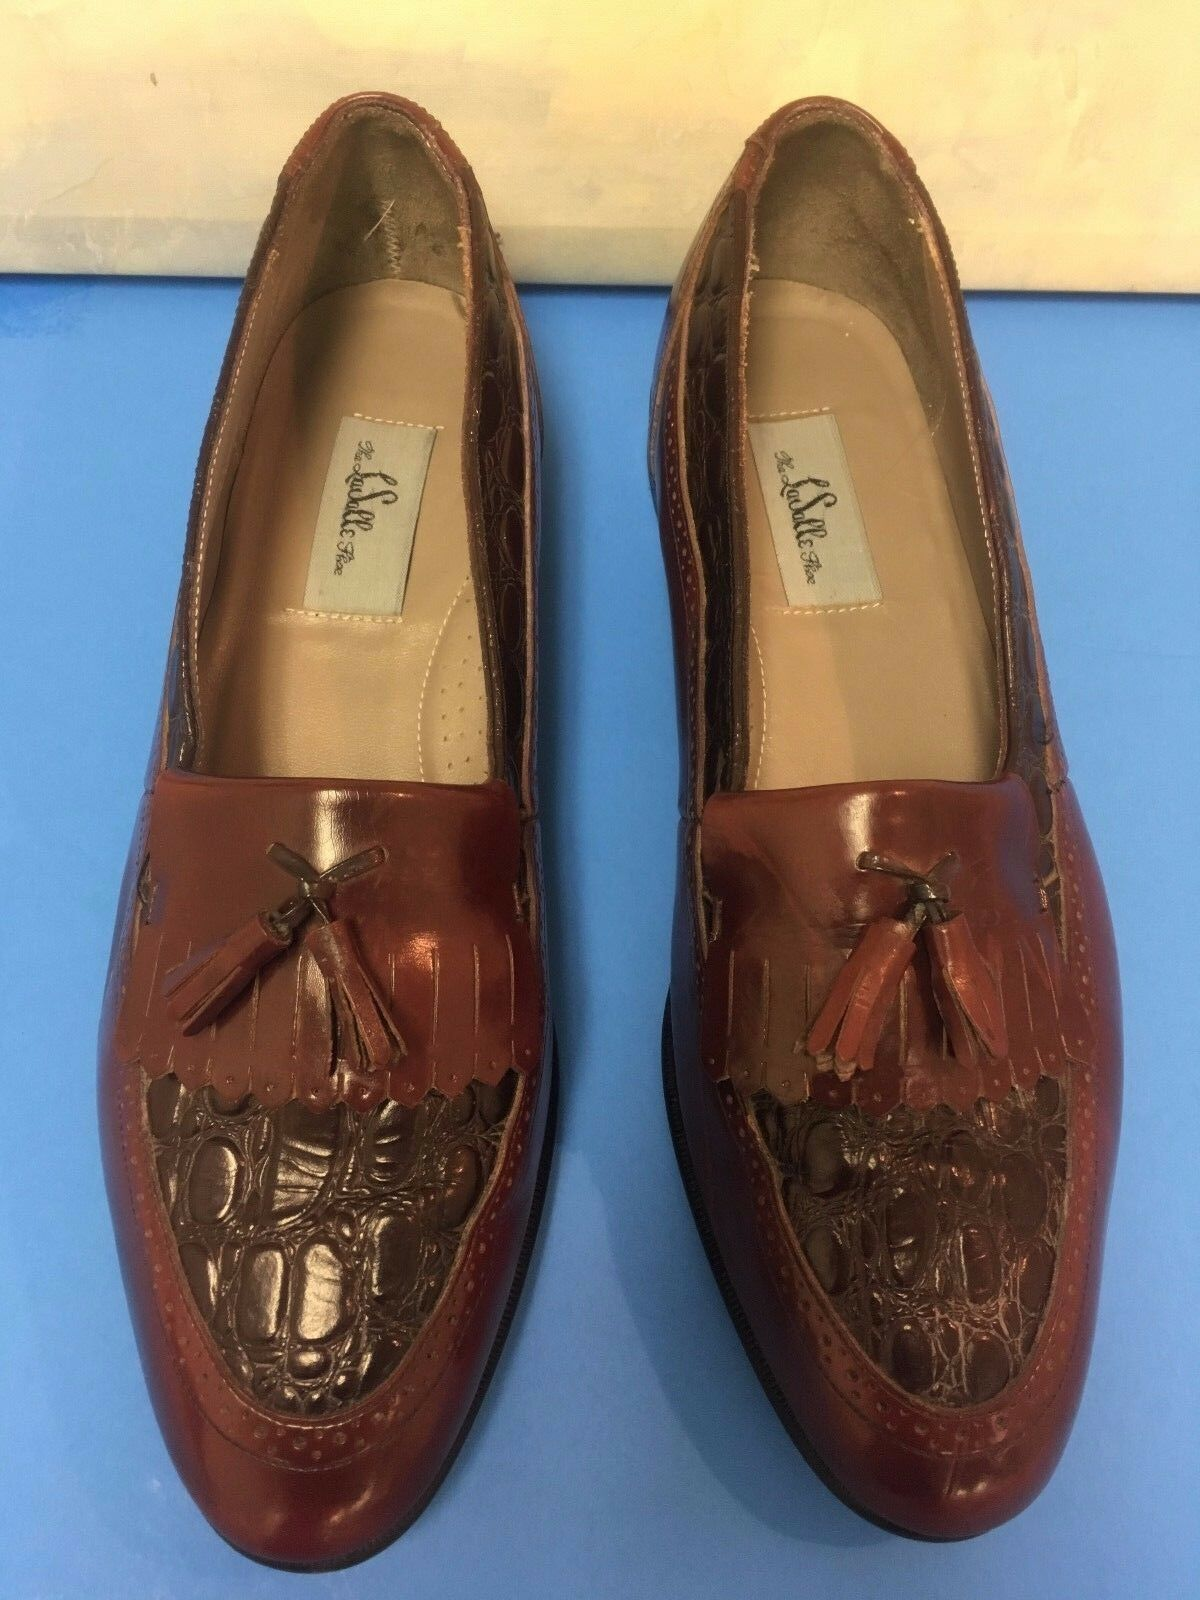 The Dress Lasalle Shoe 40640 Quality Dress The shoe 13M 6da11c